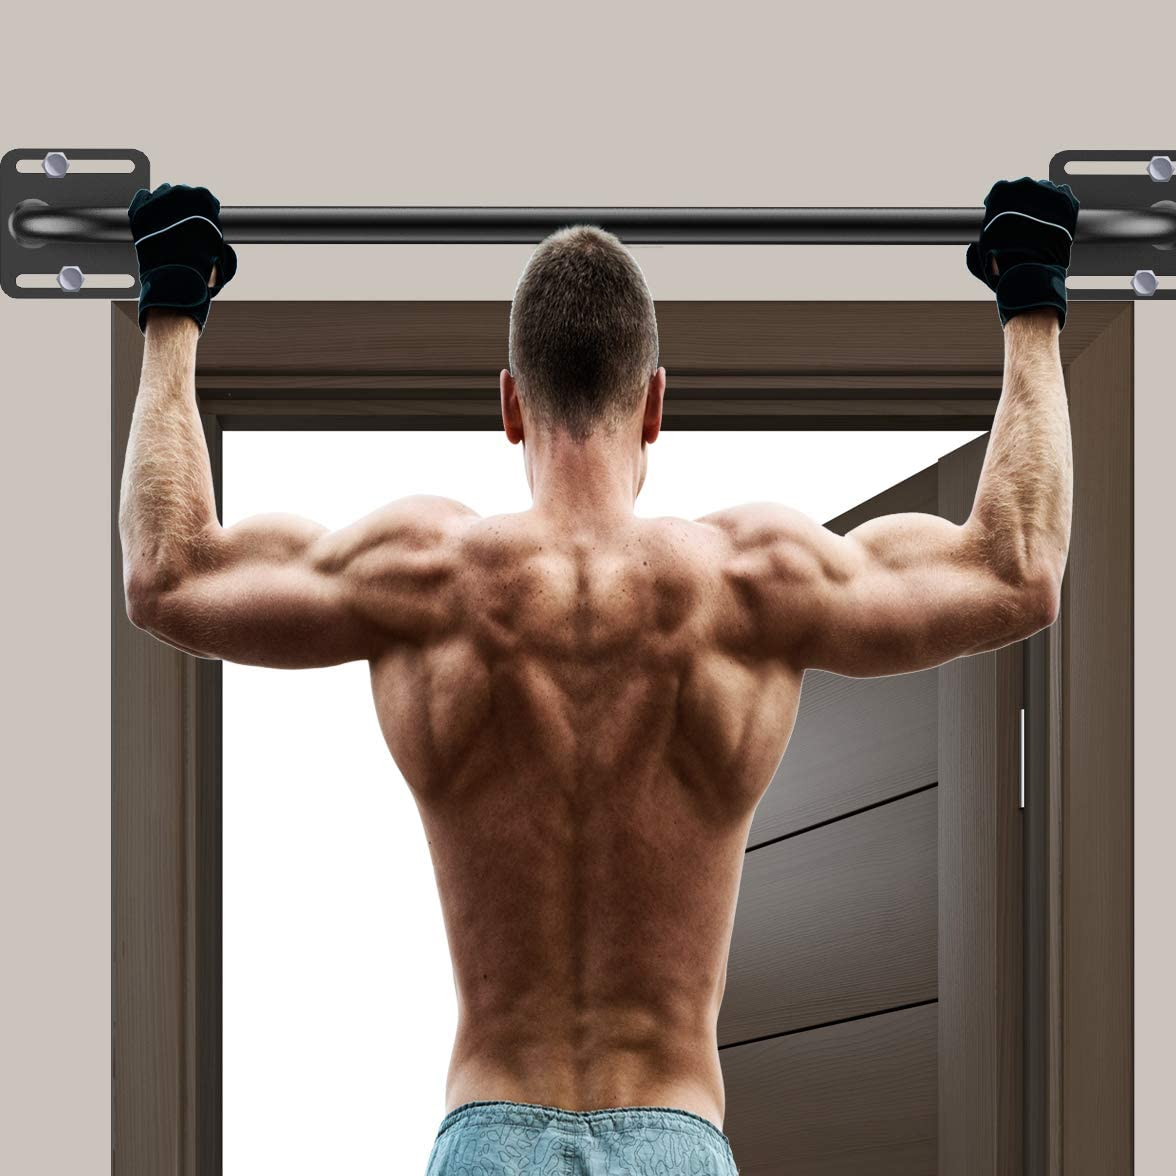 """OUUO Heavy Duty Wall Mounted Pull Up Bar for Doorway - Fully Welded Construction Strength Training Pull-Up Bars, 1.25-Inch Durable Steel Tubing - Over Door Pull Up Bar with 4.8"""" Wall to Bar Spacing : Sports & Outdoors"""